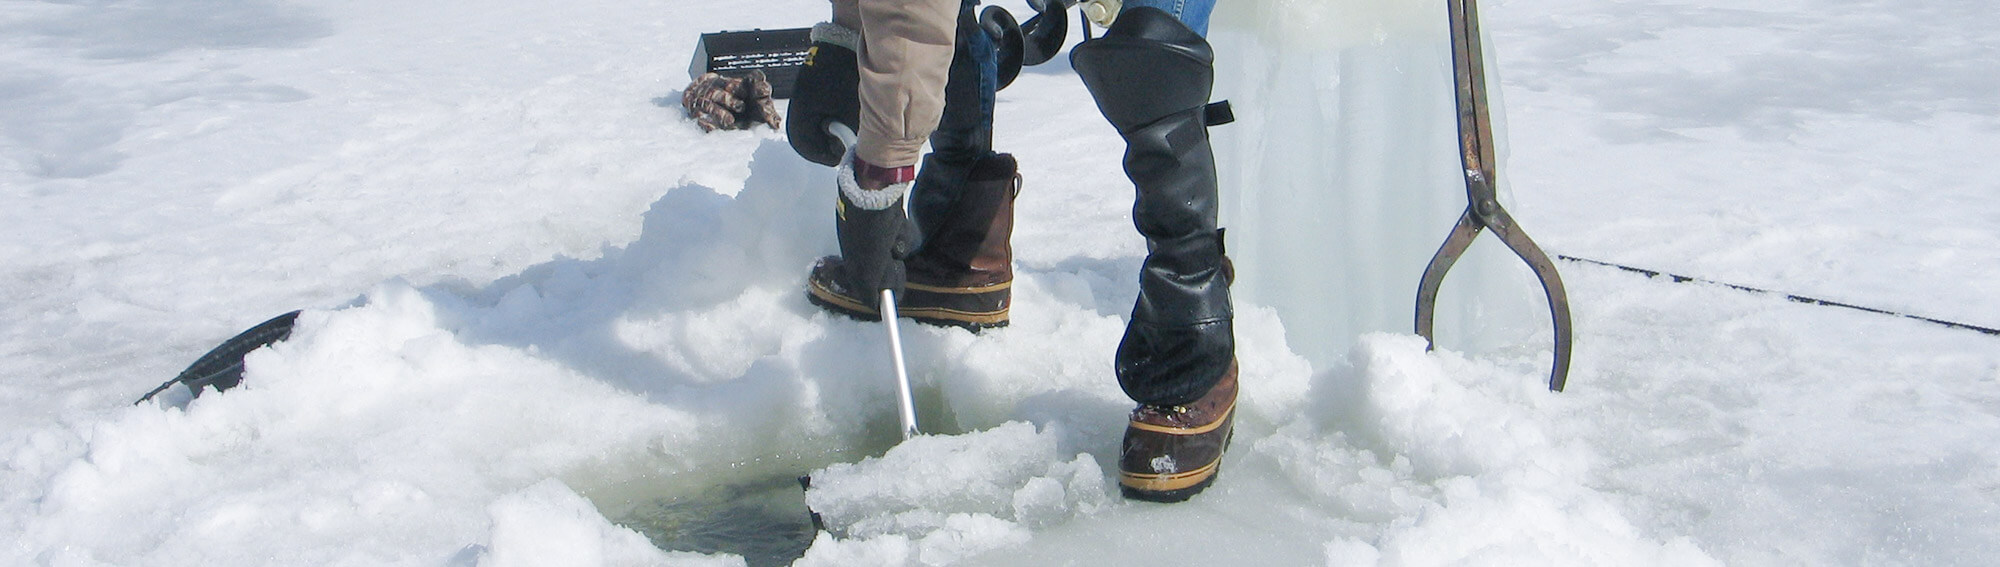 Ice fisherman using the Darkhouse Dipper to remove slush from a fishing hole